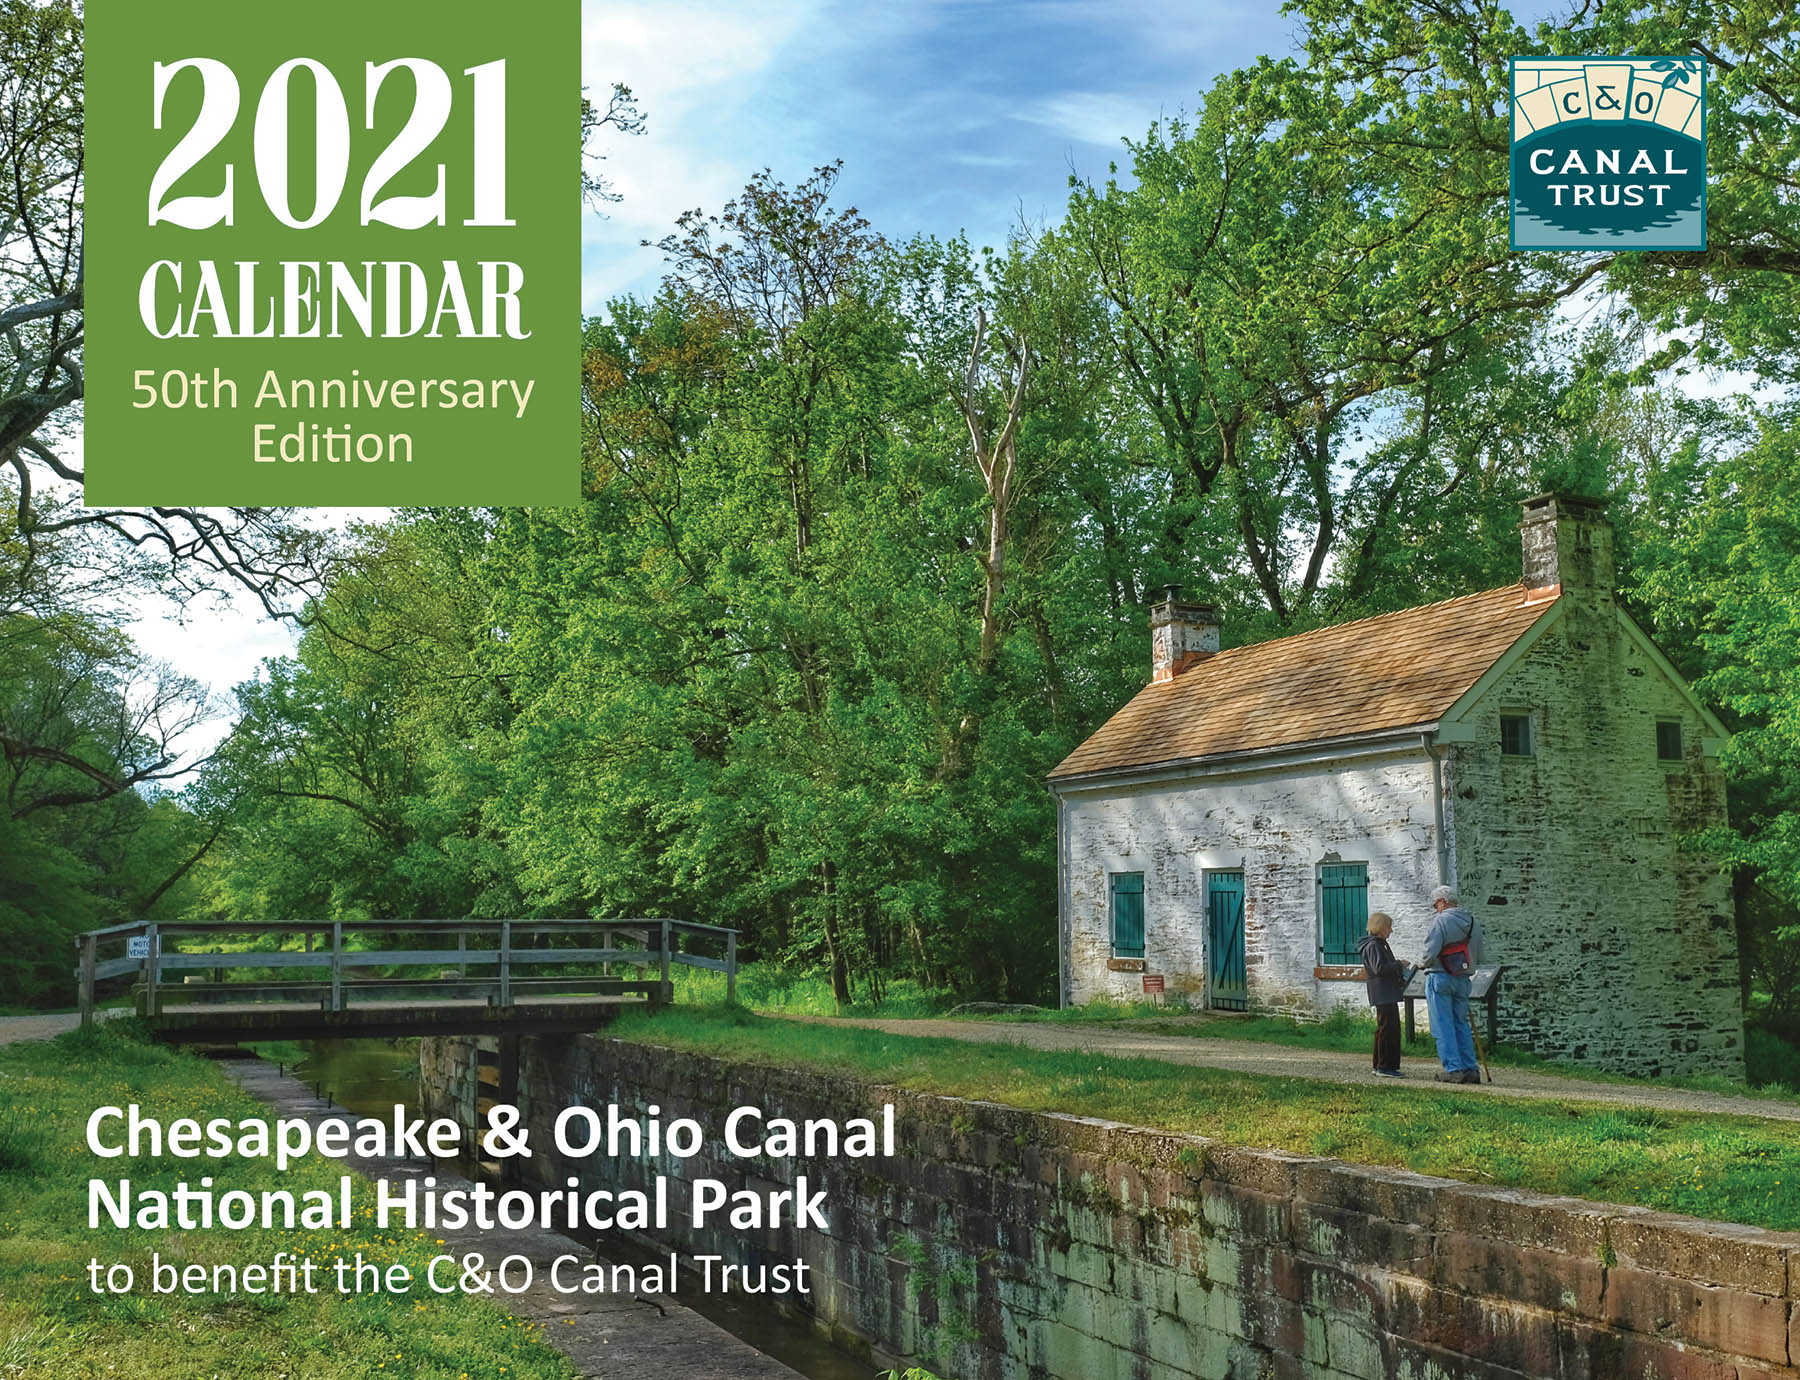 The Canal 2021